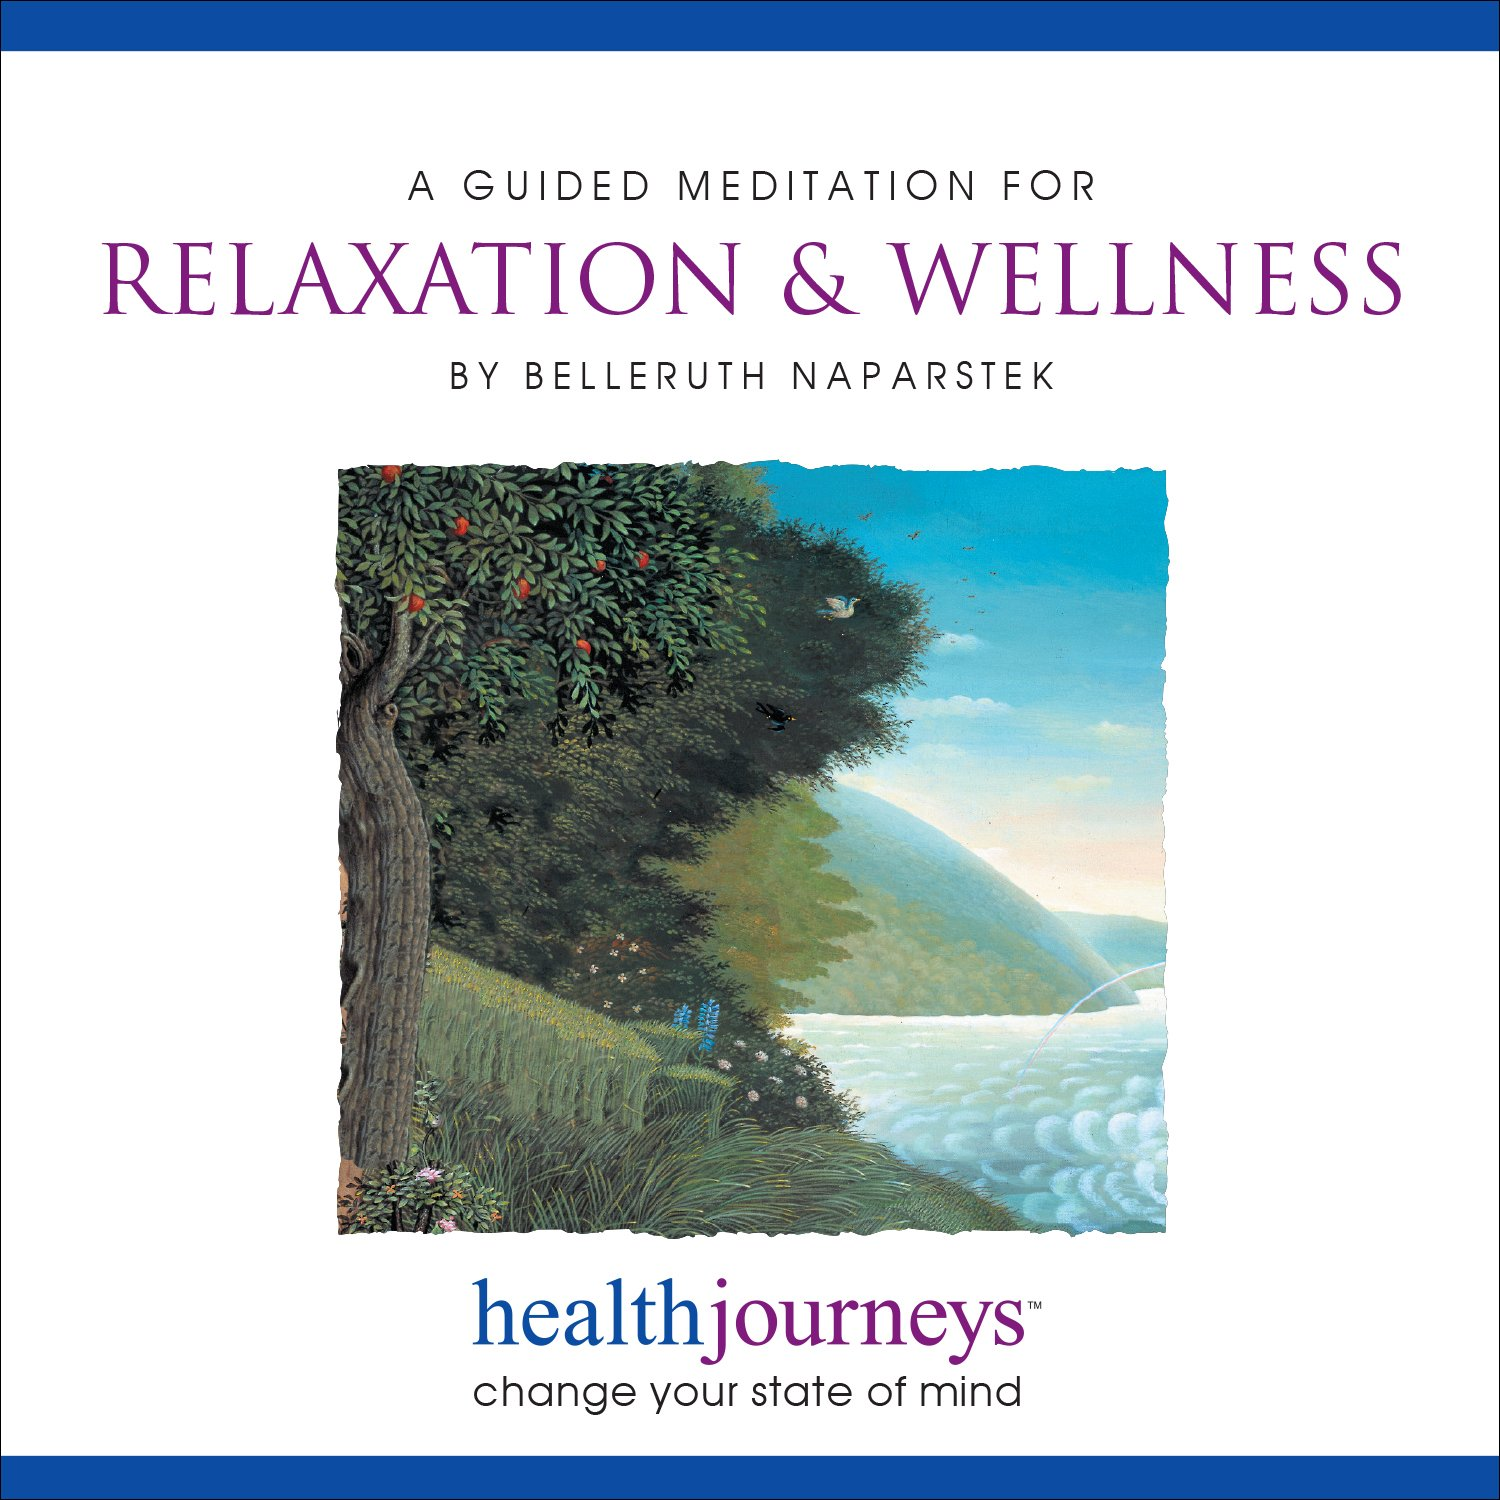 A Guided Meditation for Relaxation & Wellness Guided Imagery for Daily Relaxation, Facing Stressful Situations